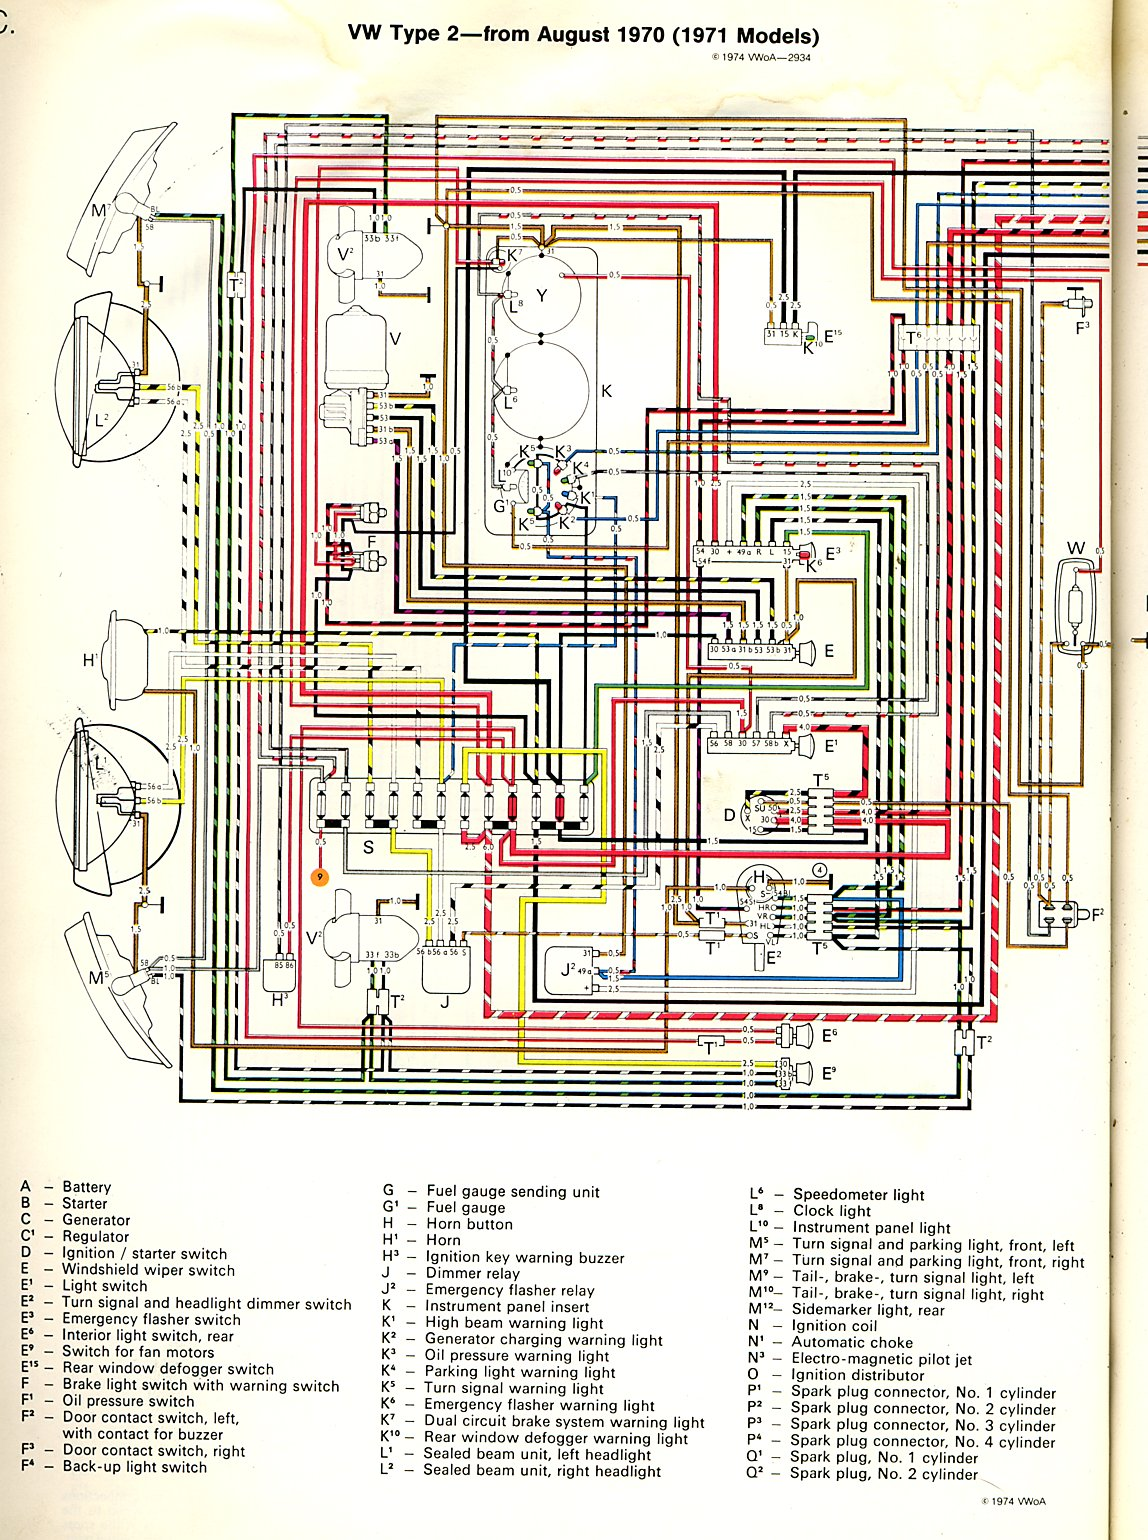 baybus_71a thesamba com type 2 wiring diagrams 69 vw wiring diagram at bayanpartner.co